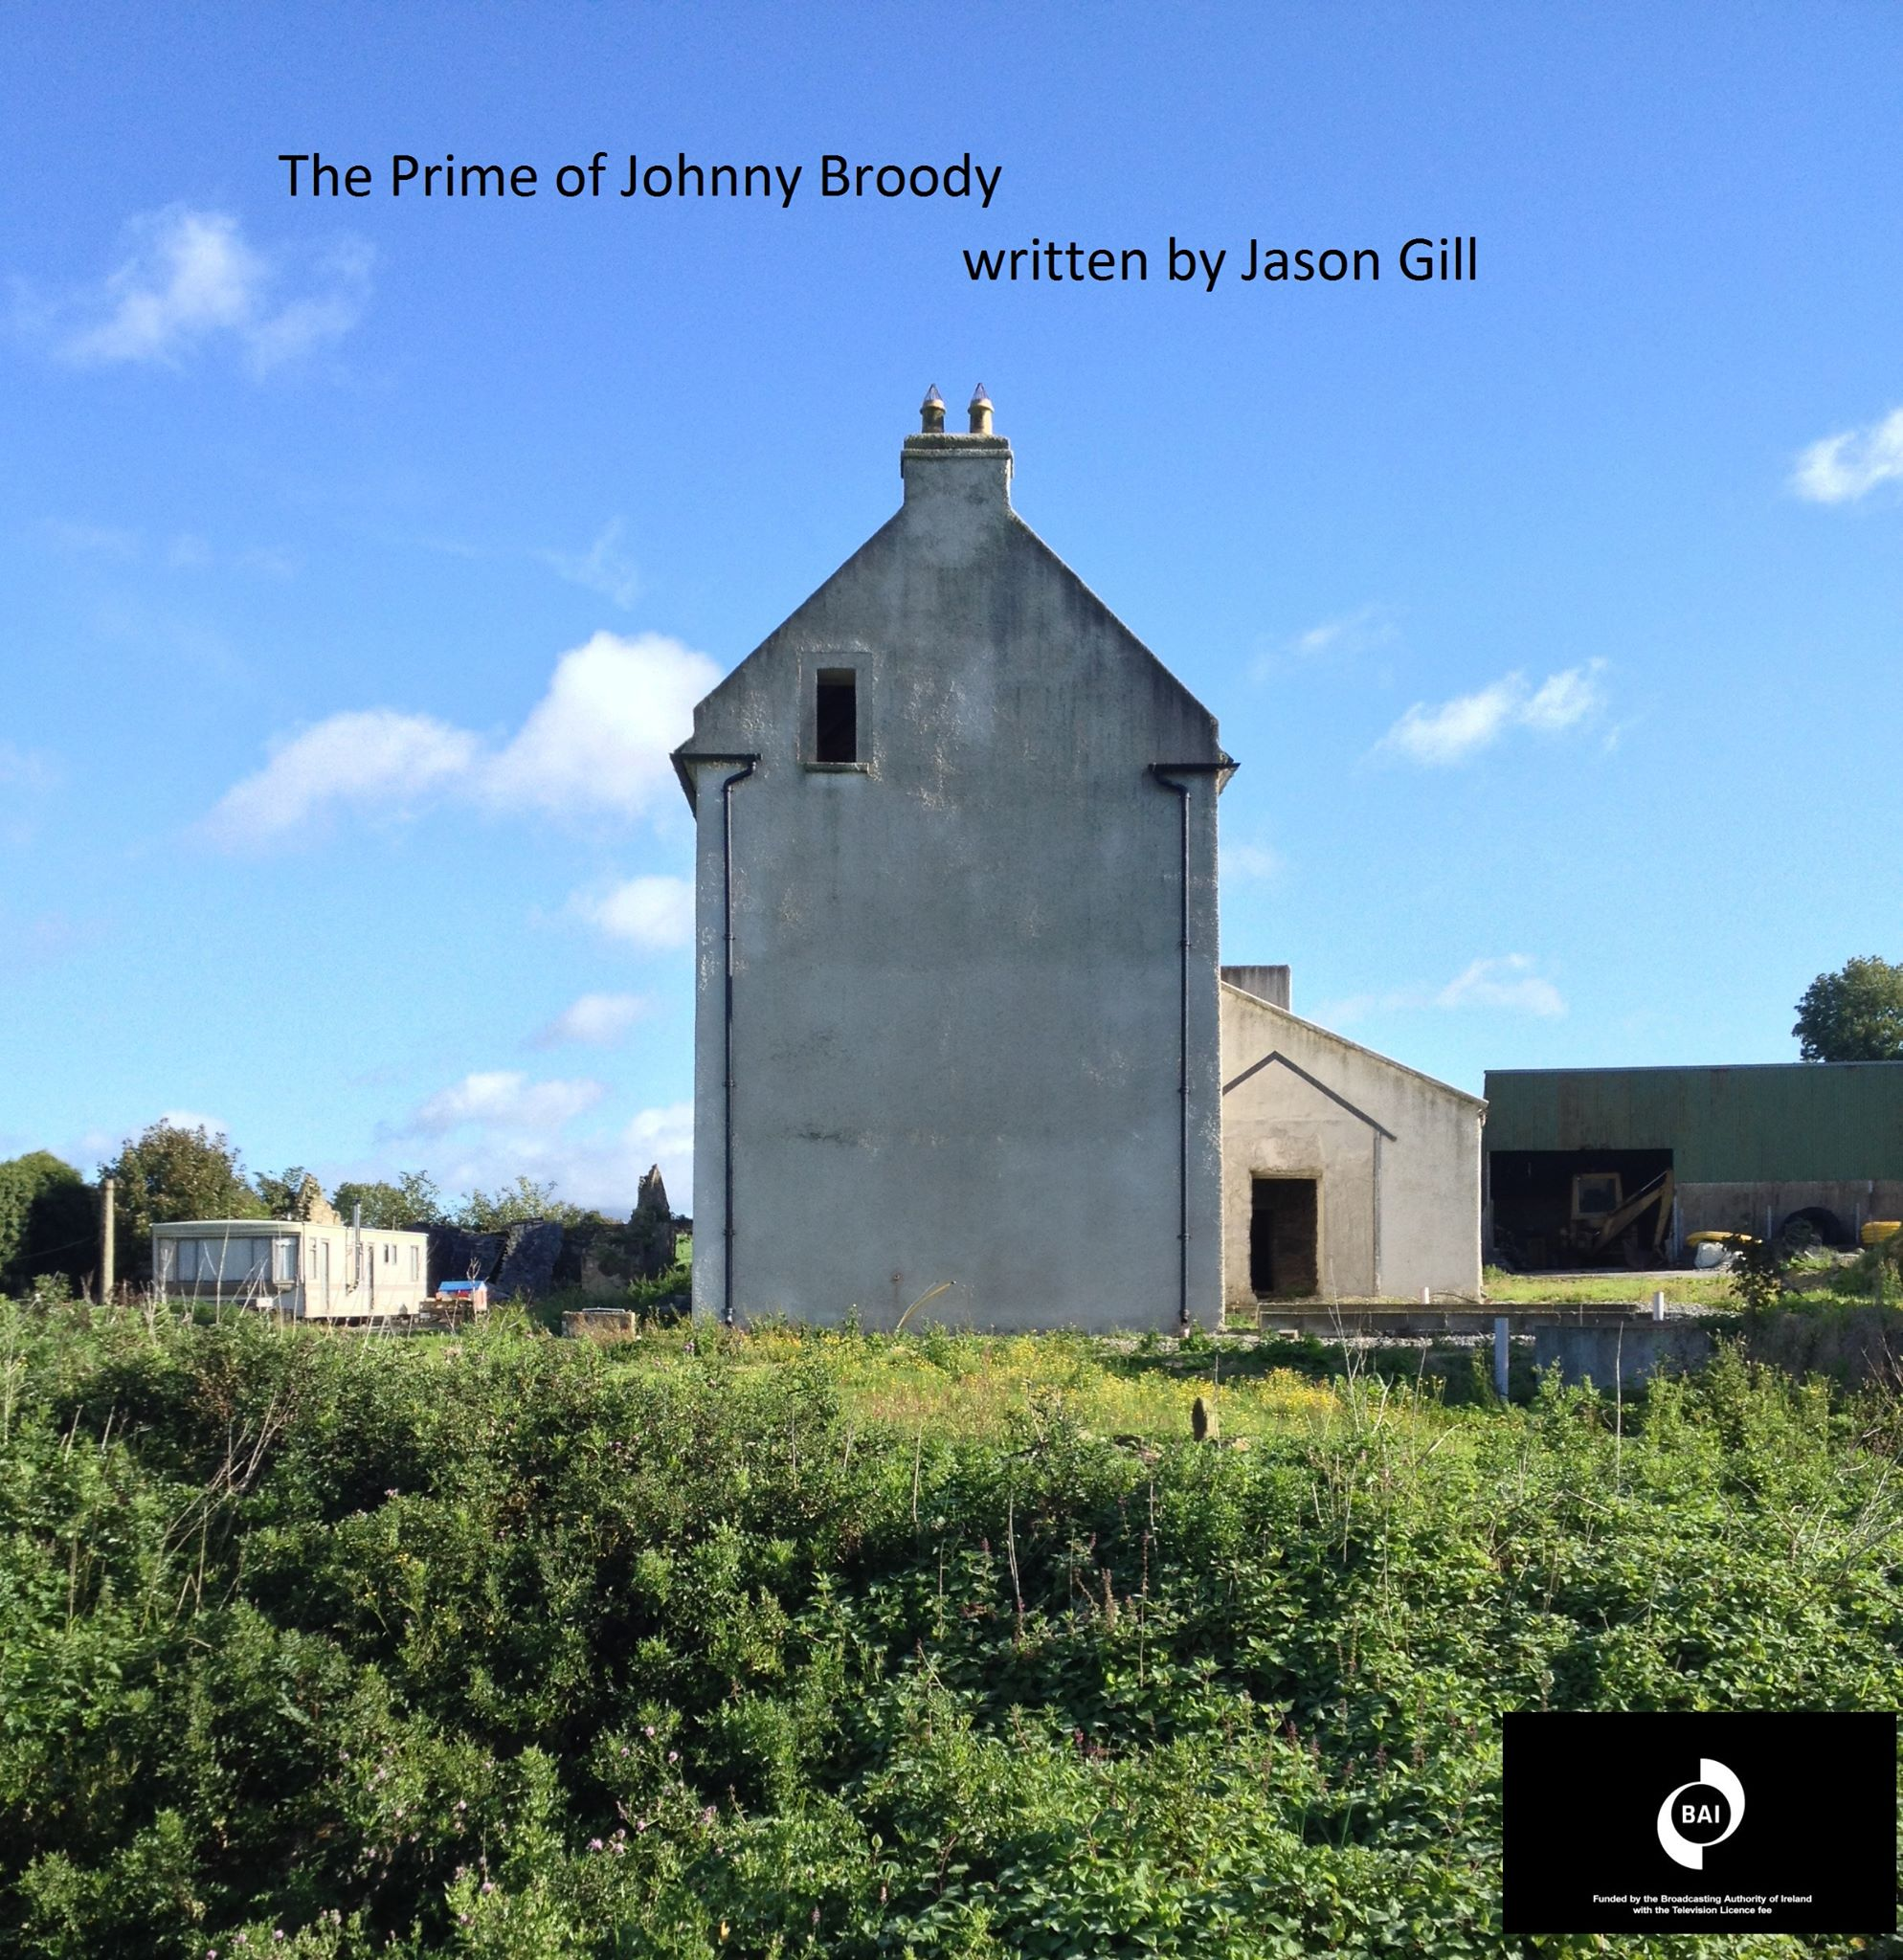 The Prime of Johnny Broody